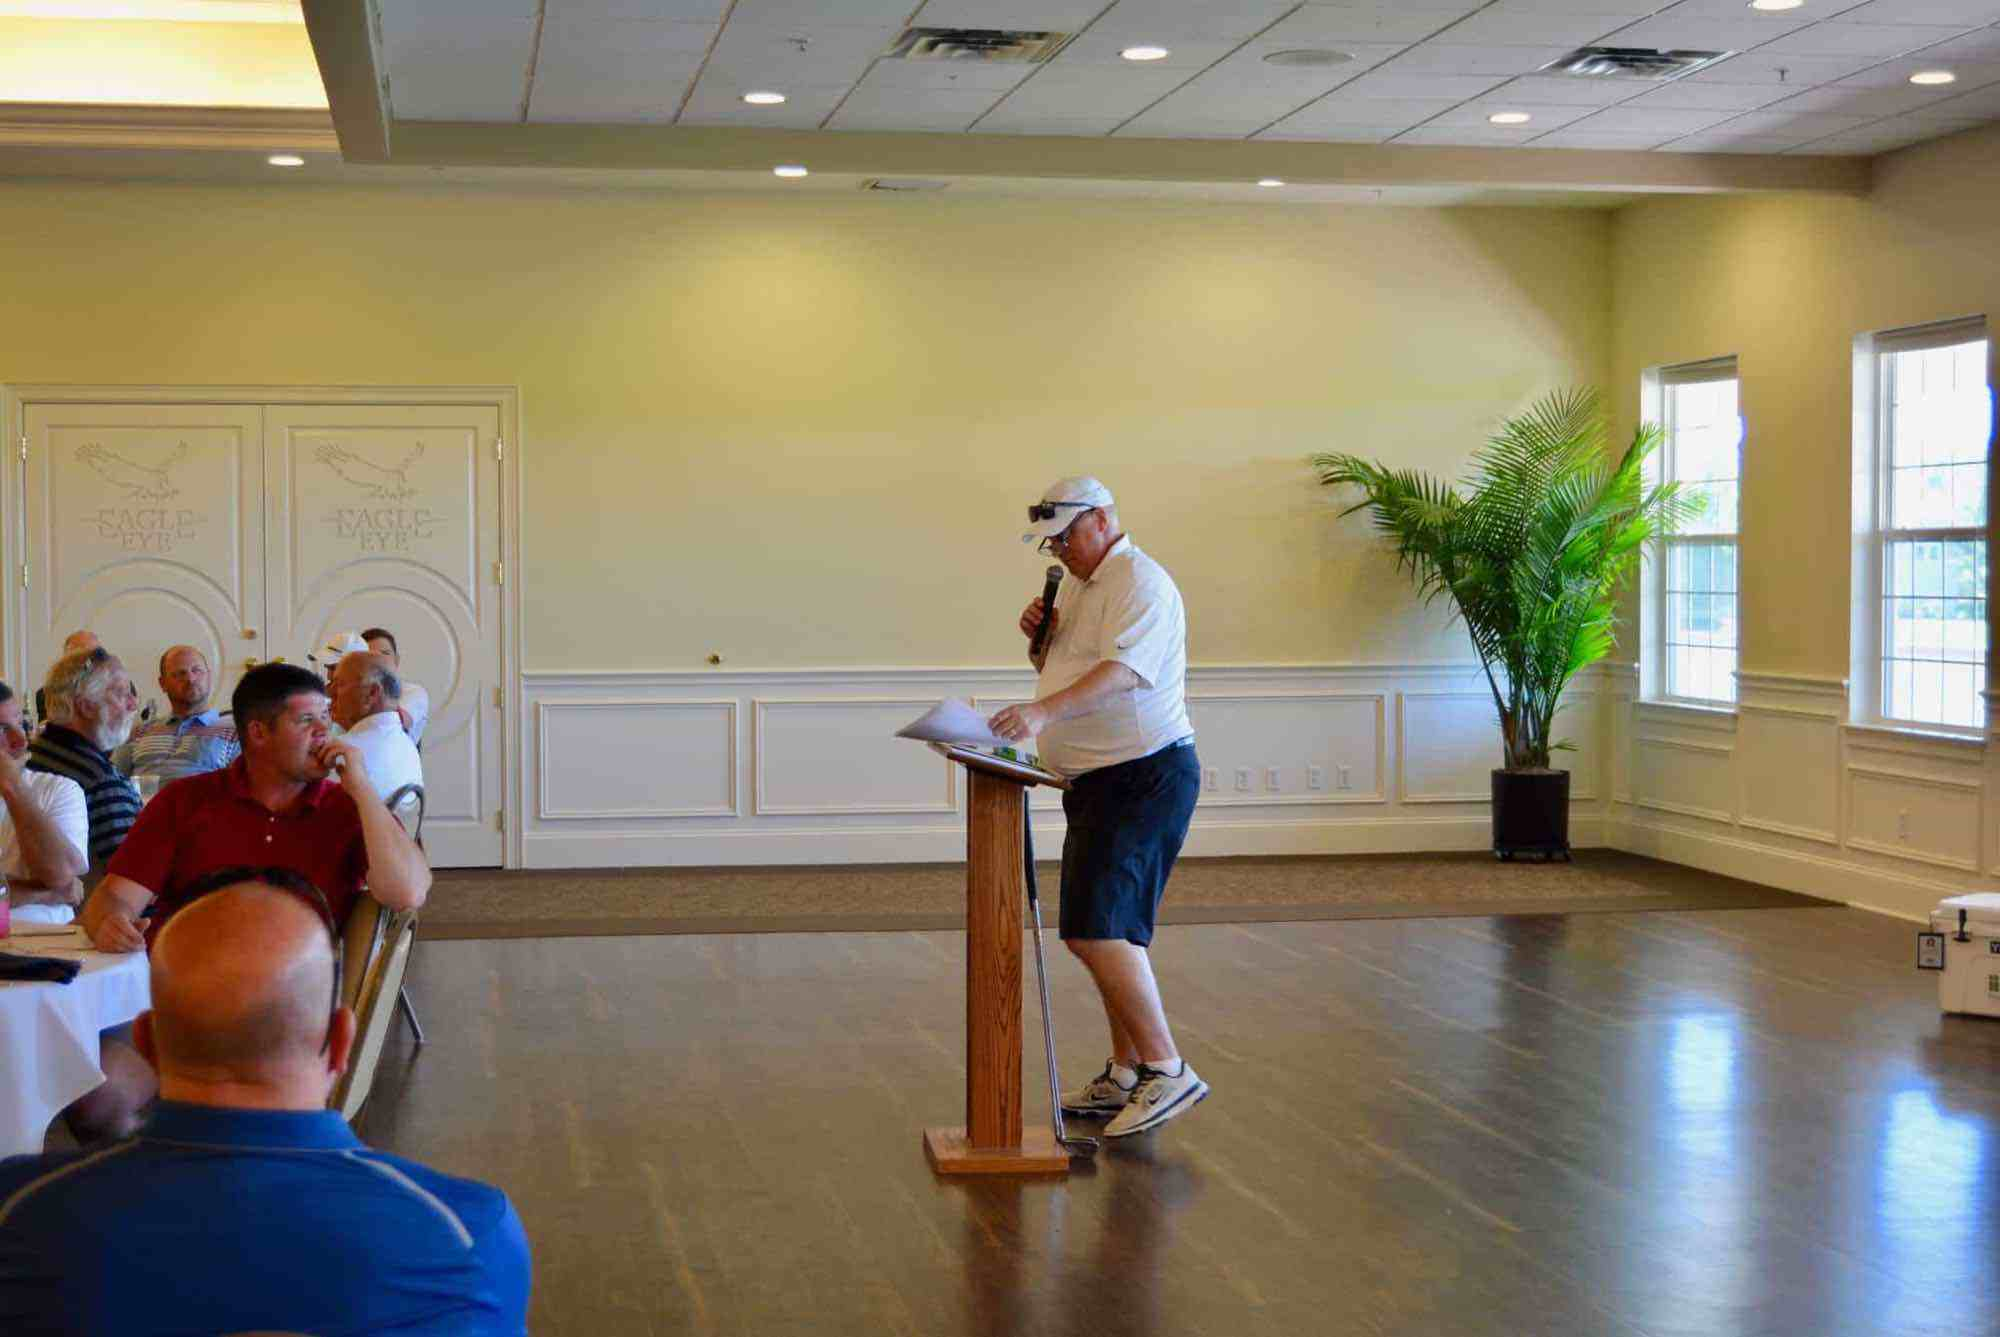 Pine Rest VP & COO Bob Nykamp welcomes golfers